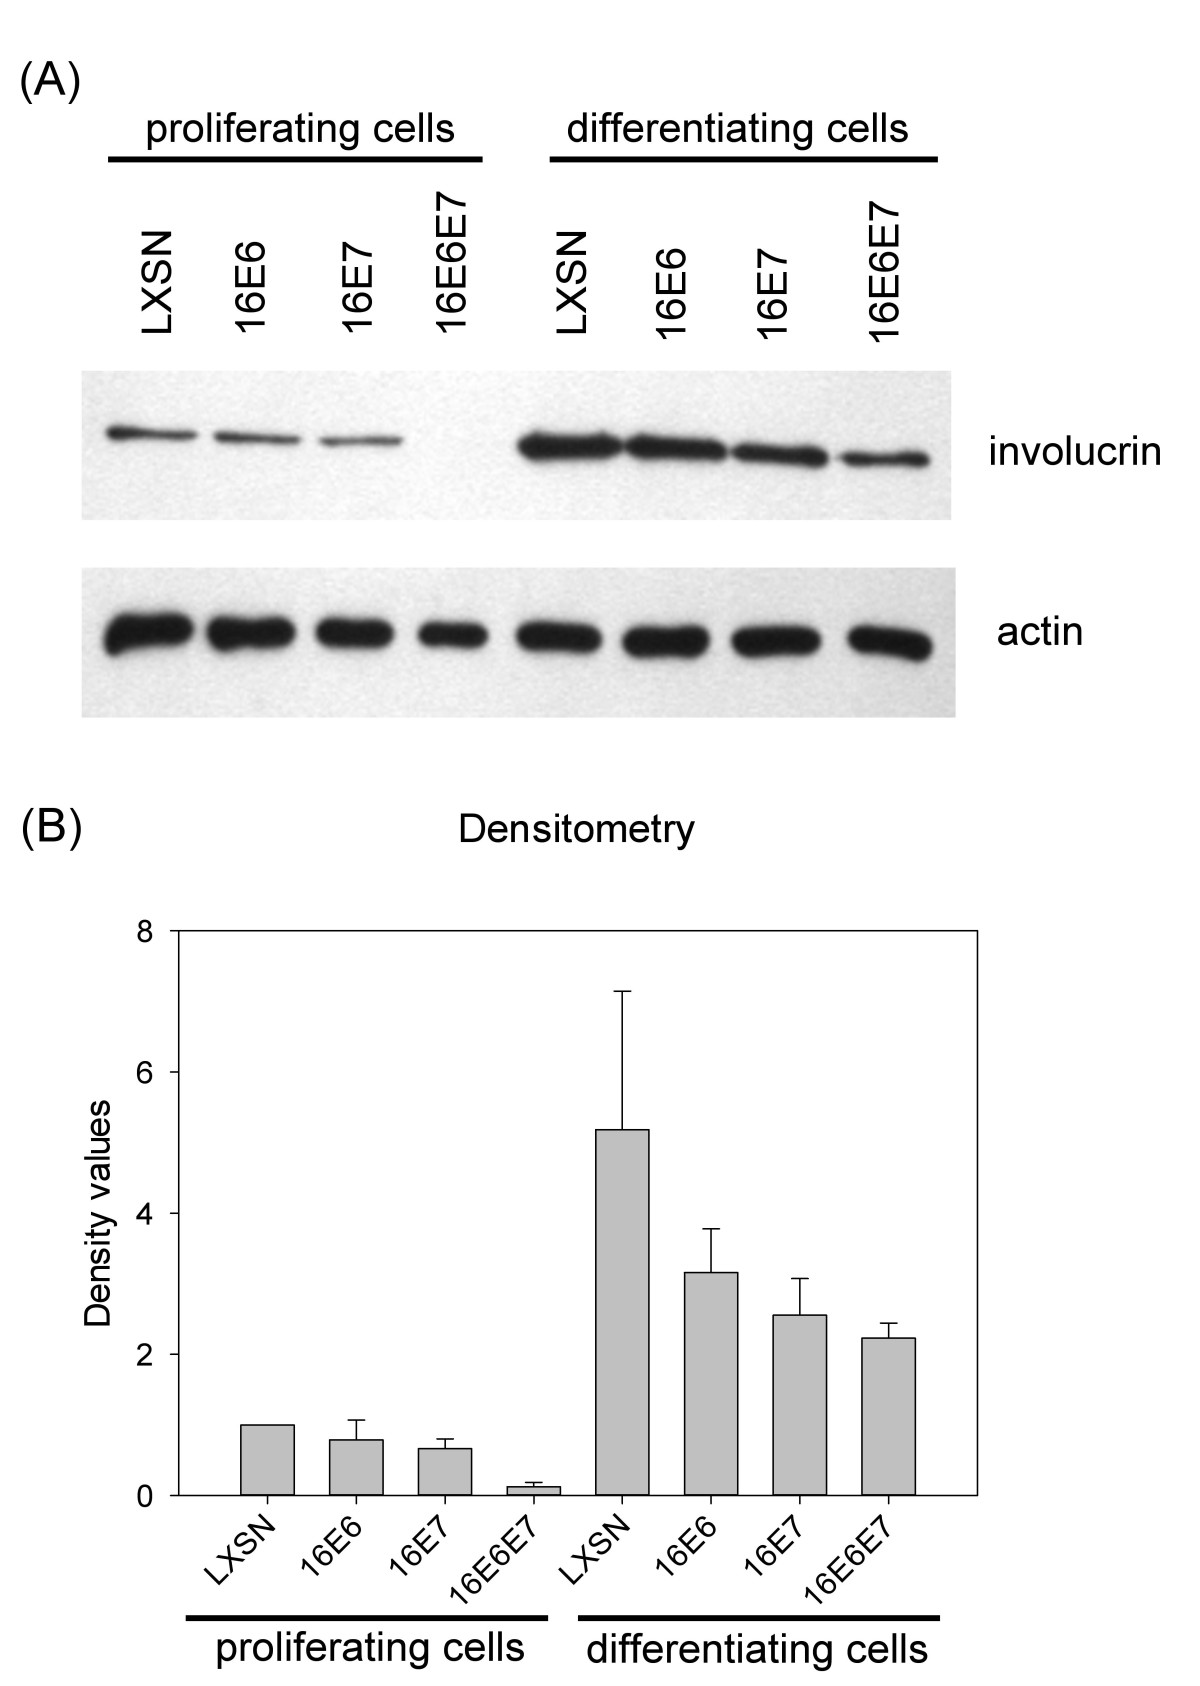 https://static-content.springer.com/image/art%3A10.1186%2F1743-422X-9-36/MediaObjects/12985_2011_Article_1701_Fig3_HTML.jpg